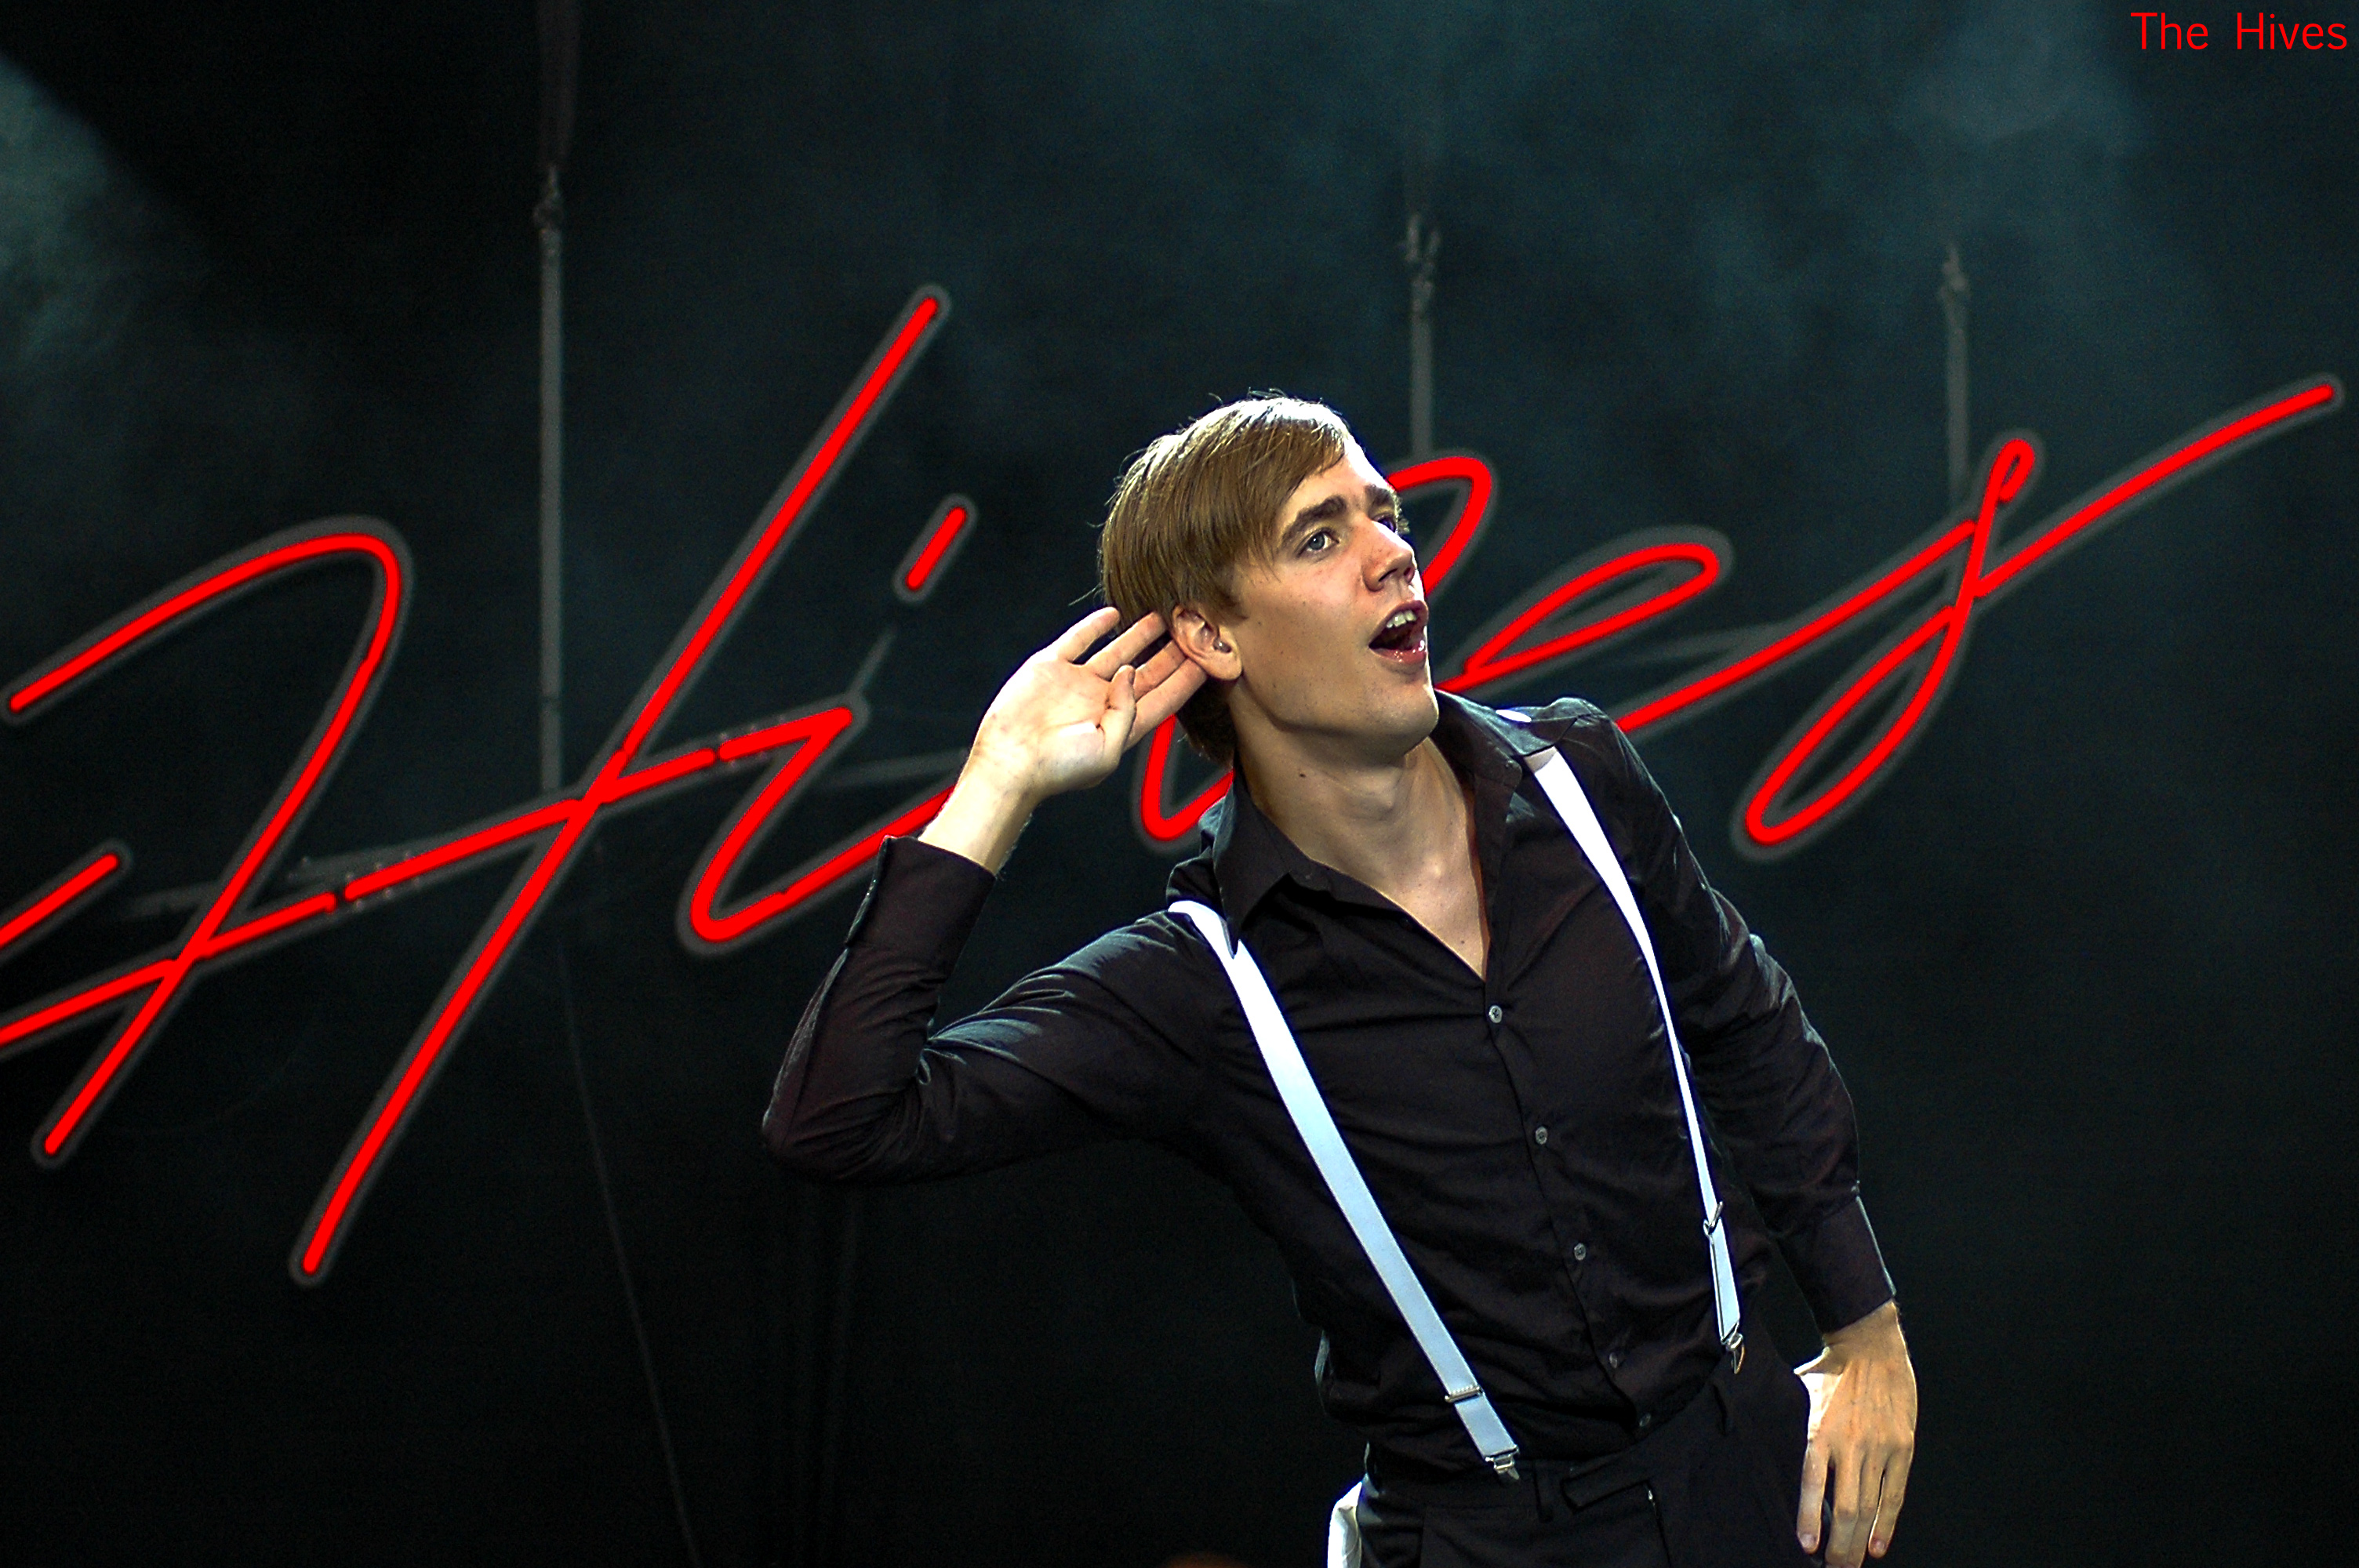 The Hives 2007